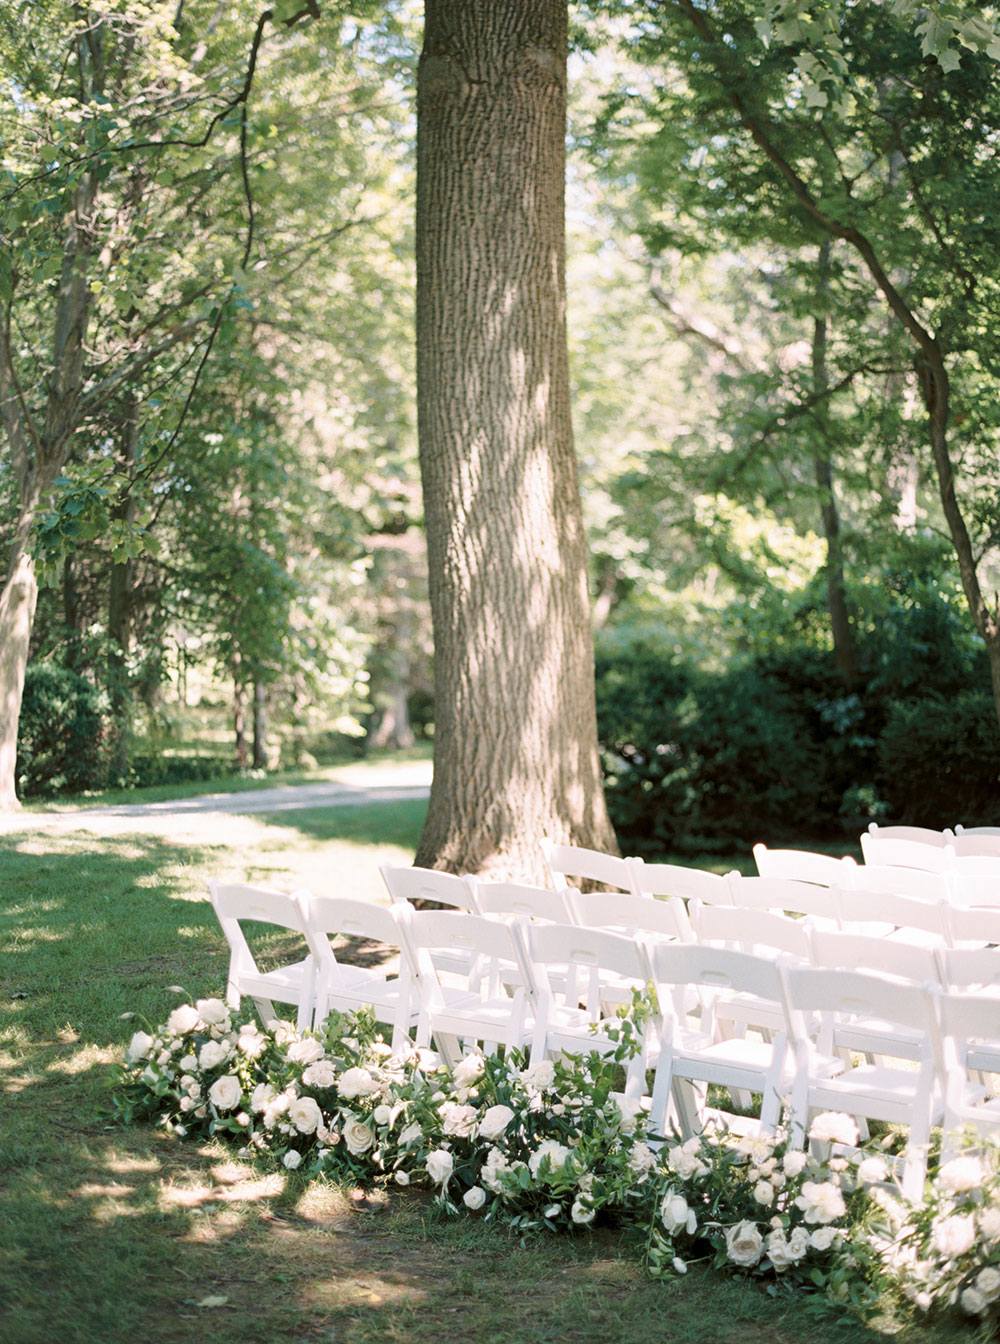 kurtz-orchards-wedding-gracewood-estate-niagara-on-the-lake-photo-by-katie-nicolle-photography-0020.JPG